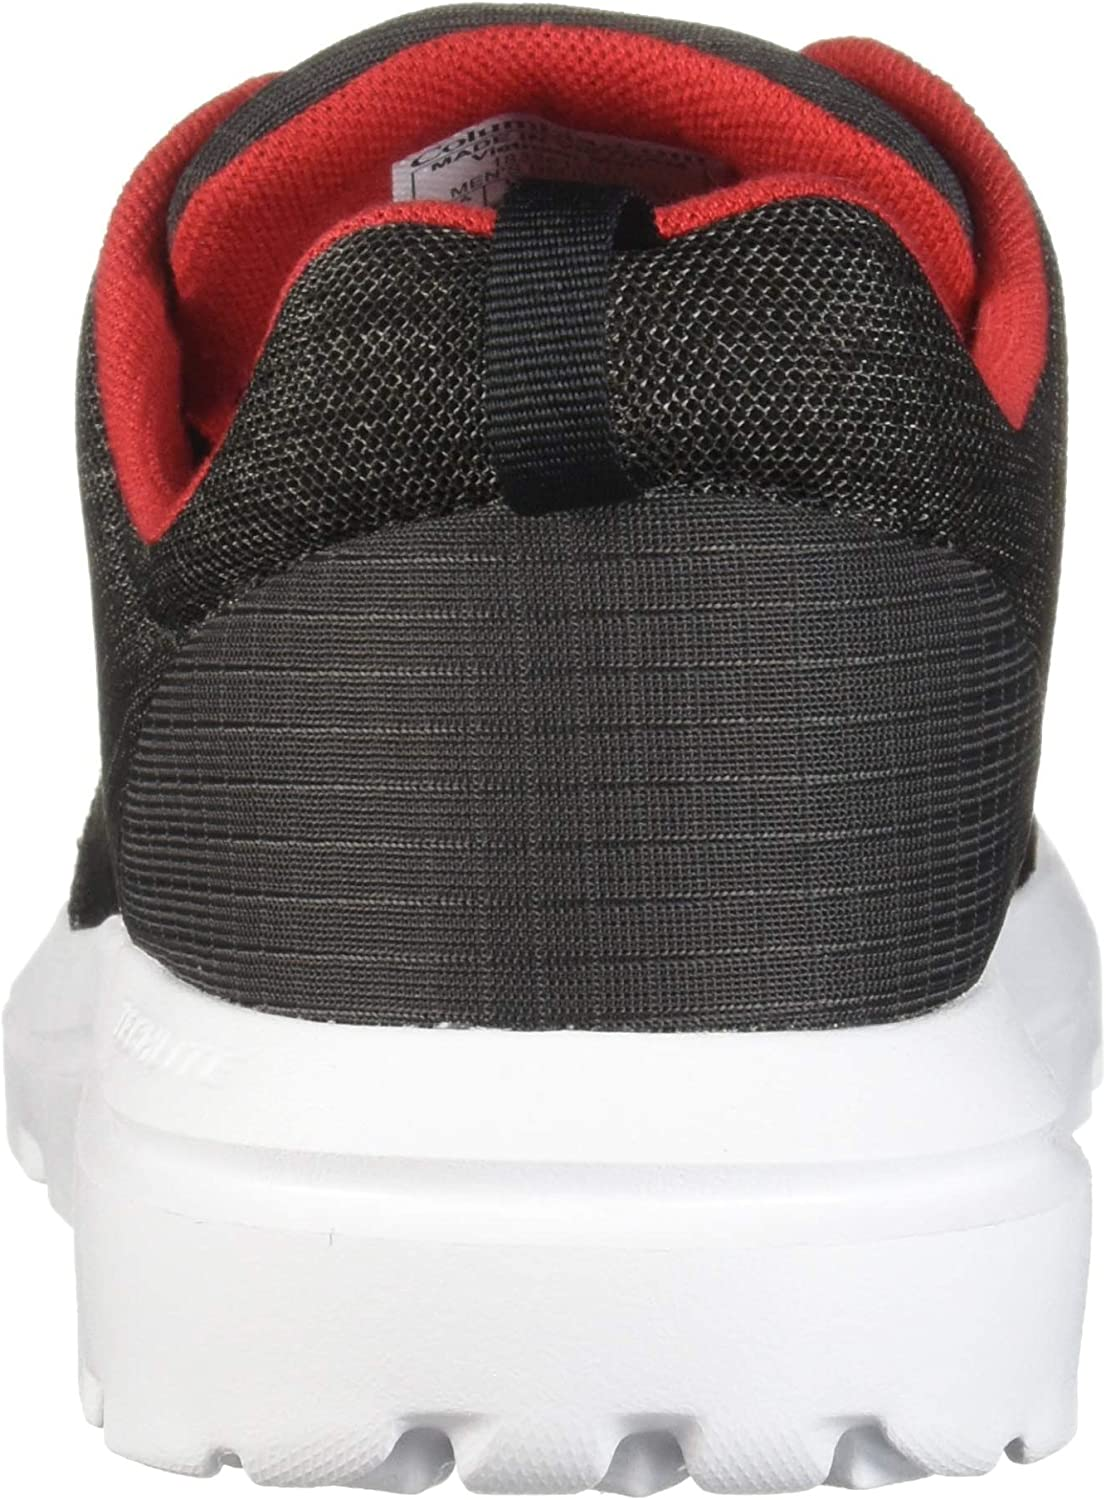 Columbia Mens Backpedal Shoe, Breathable, High-Traction Grip